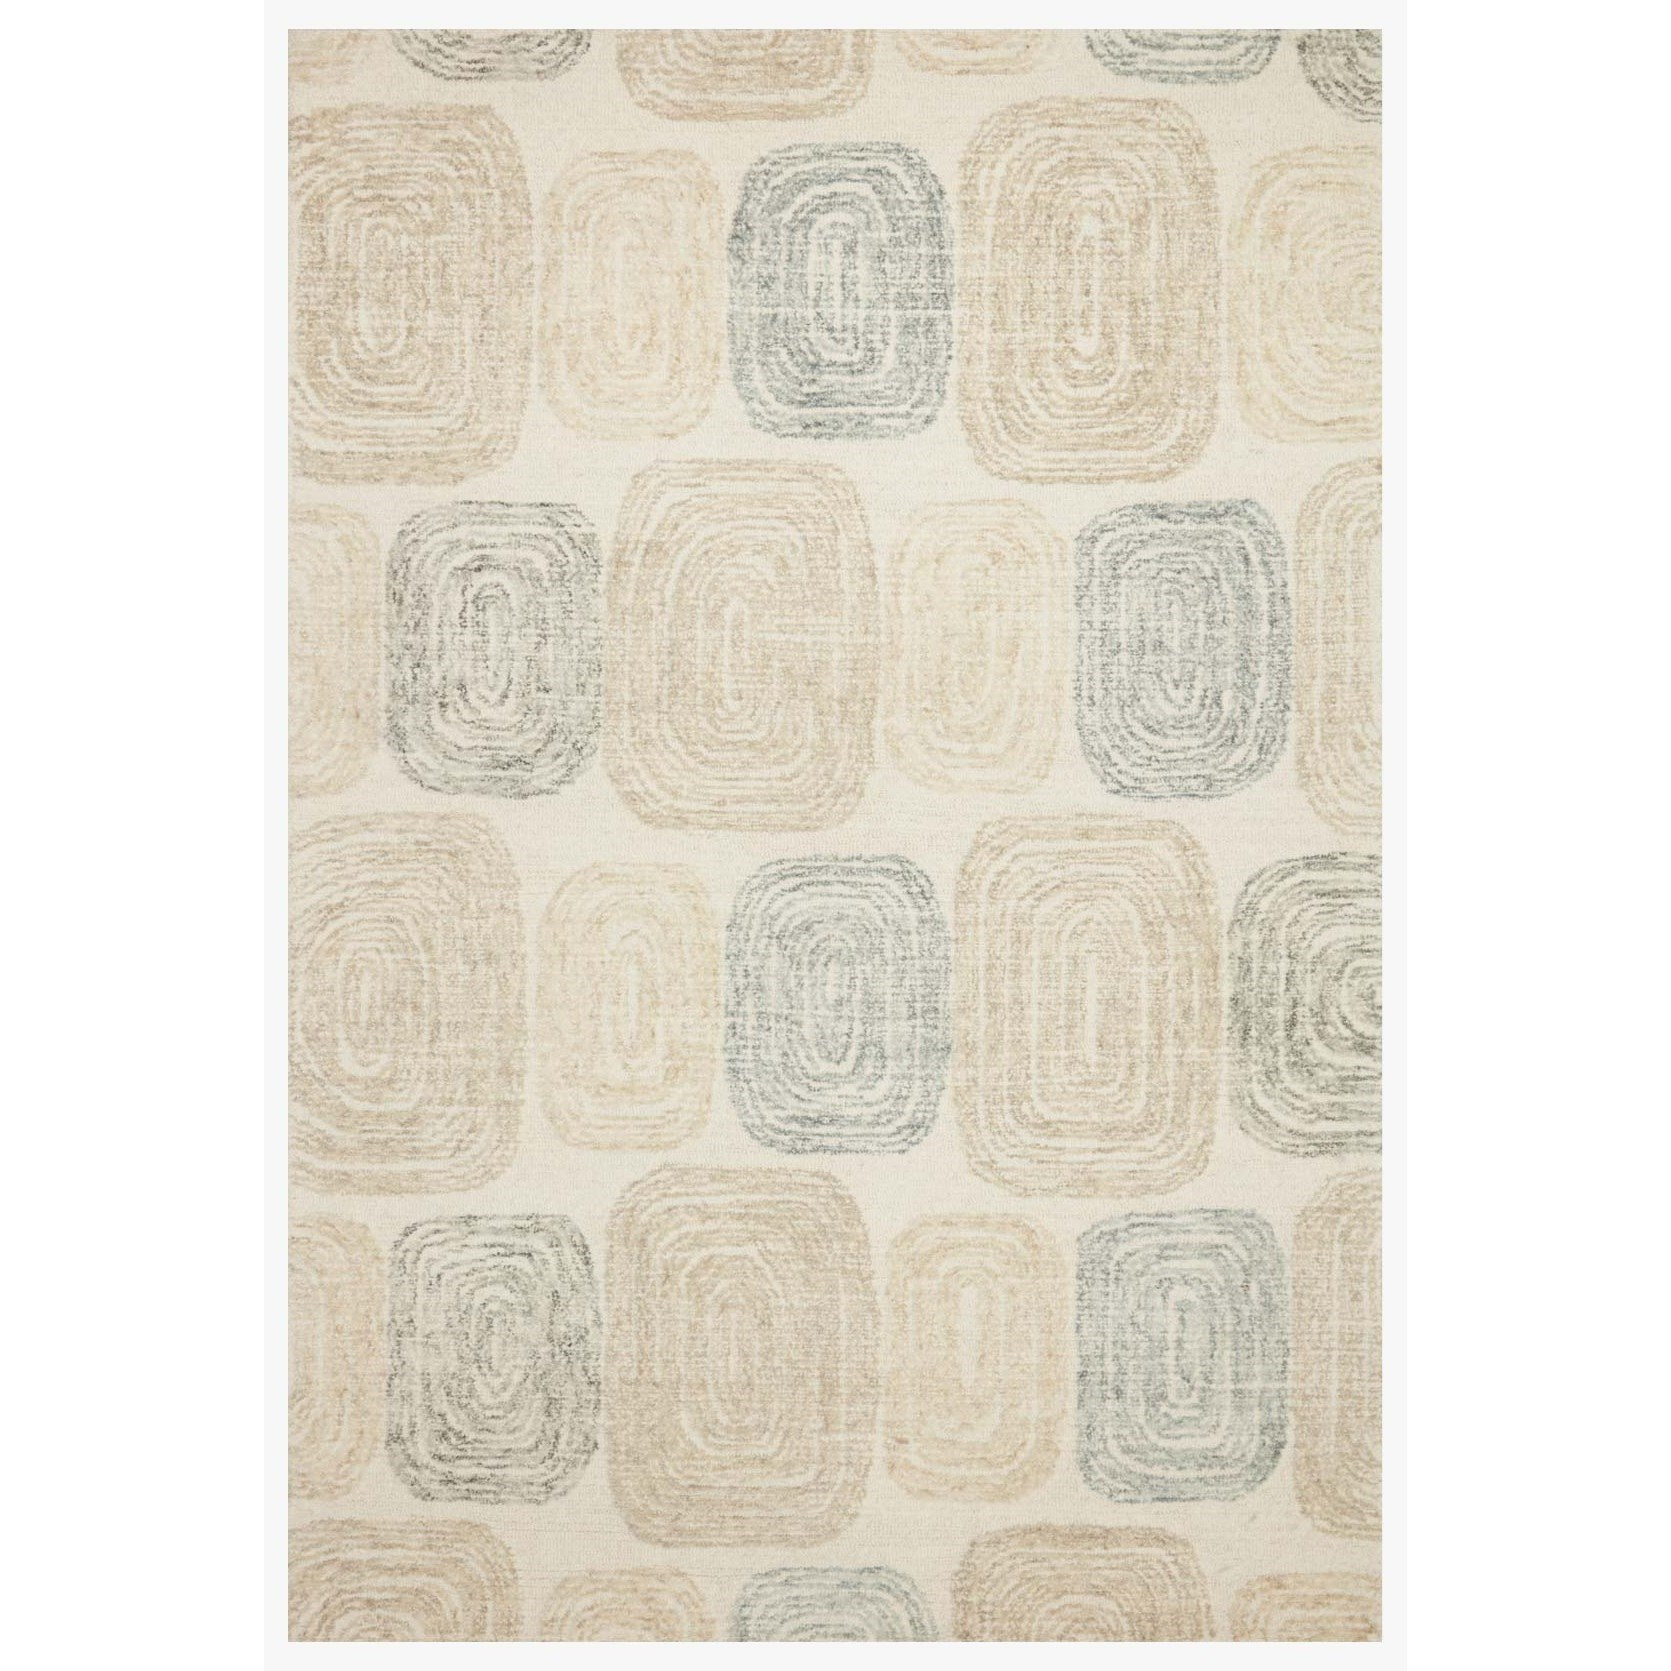 """Milo 2'6"""" x 7'6"""" Teal / Neutral Rug by Loloi Rugs at Virginia Furniture Market"""